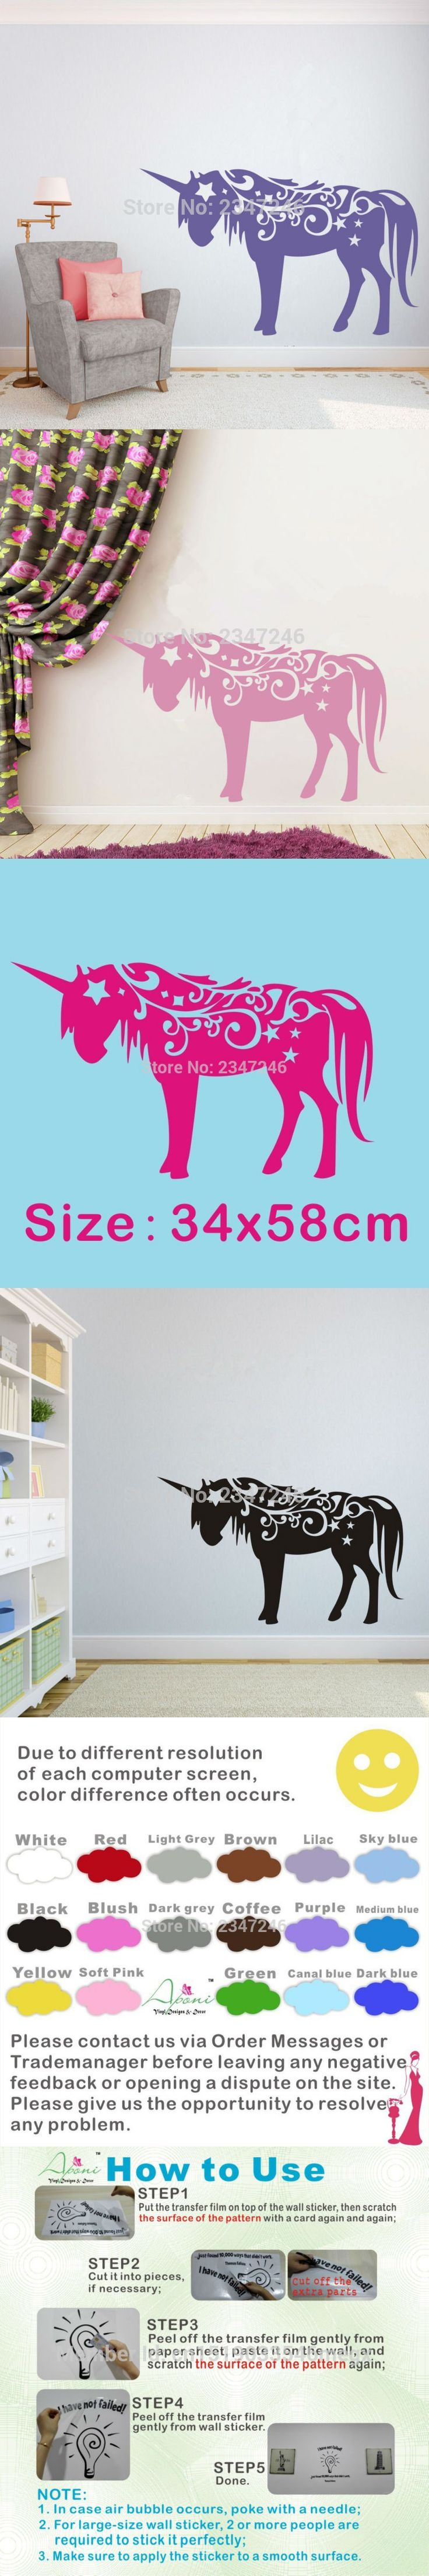 Best 25 wall stickers for nursery ideas on pinterest star wall unicorn horse wall decal home decor sticker art vinyl wall stickers for nursery kids bedroom gril room decoration amipublicfo Image collections